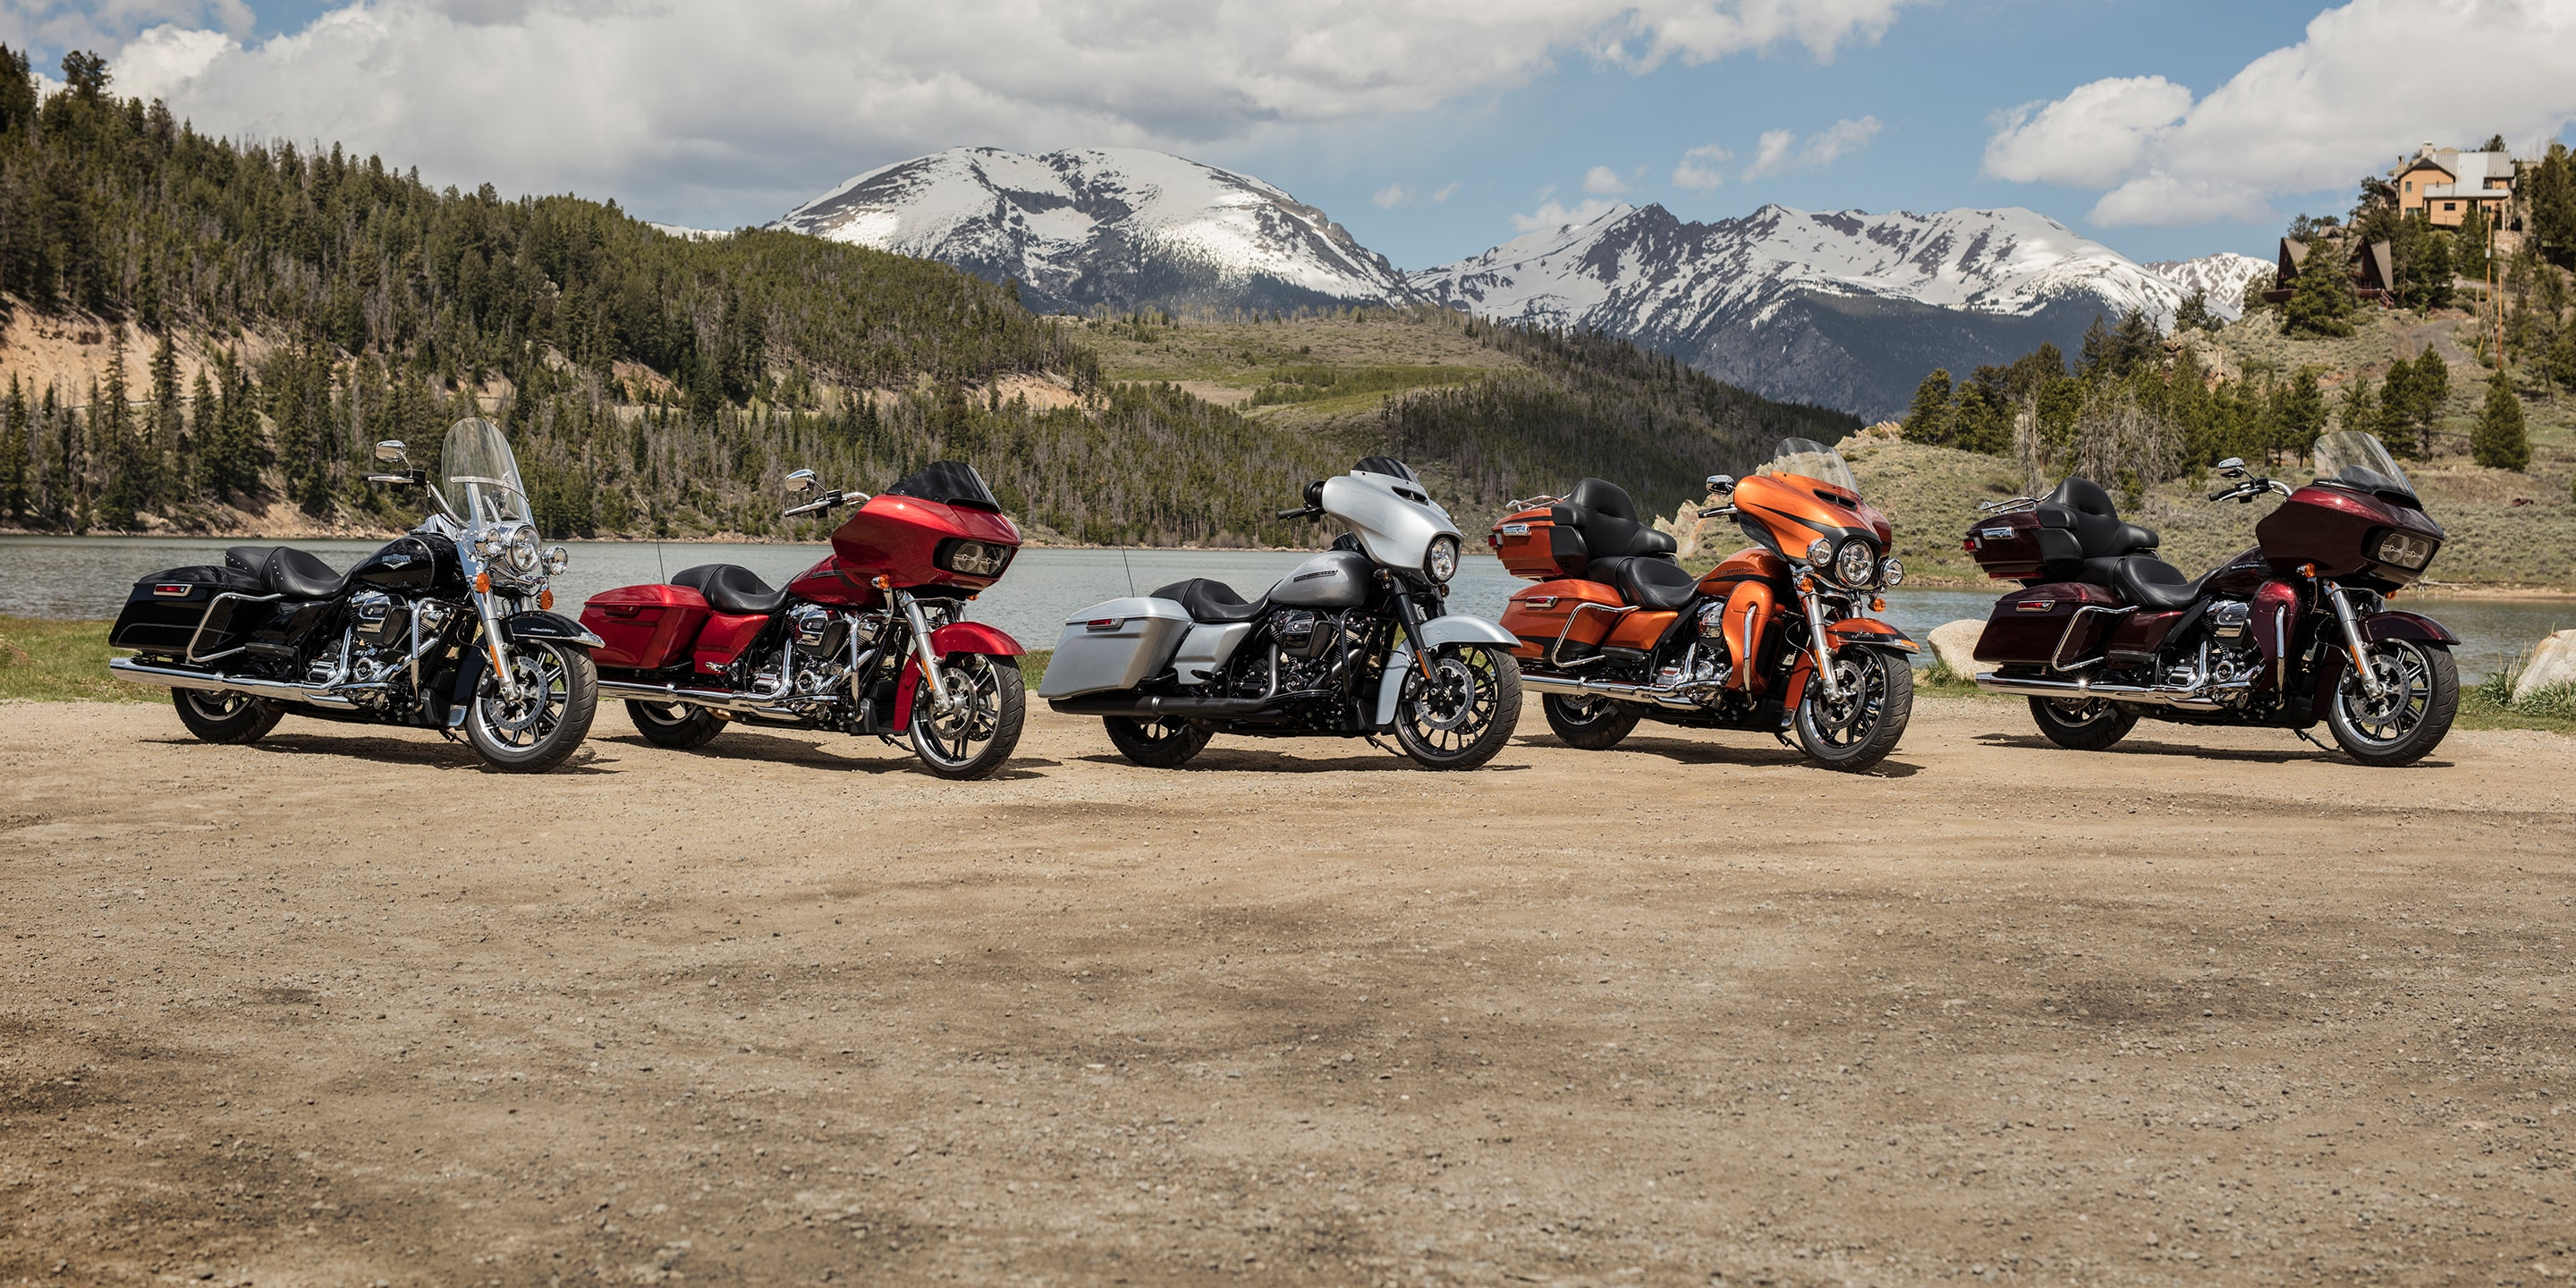 2019 Touring Motorcycles